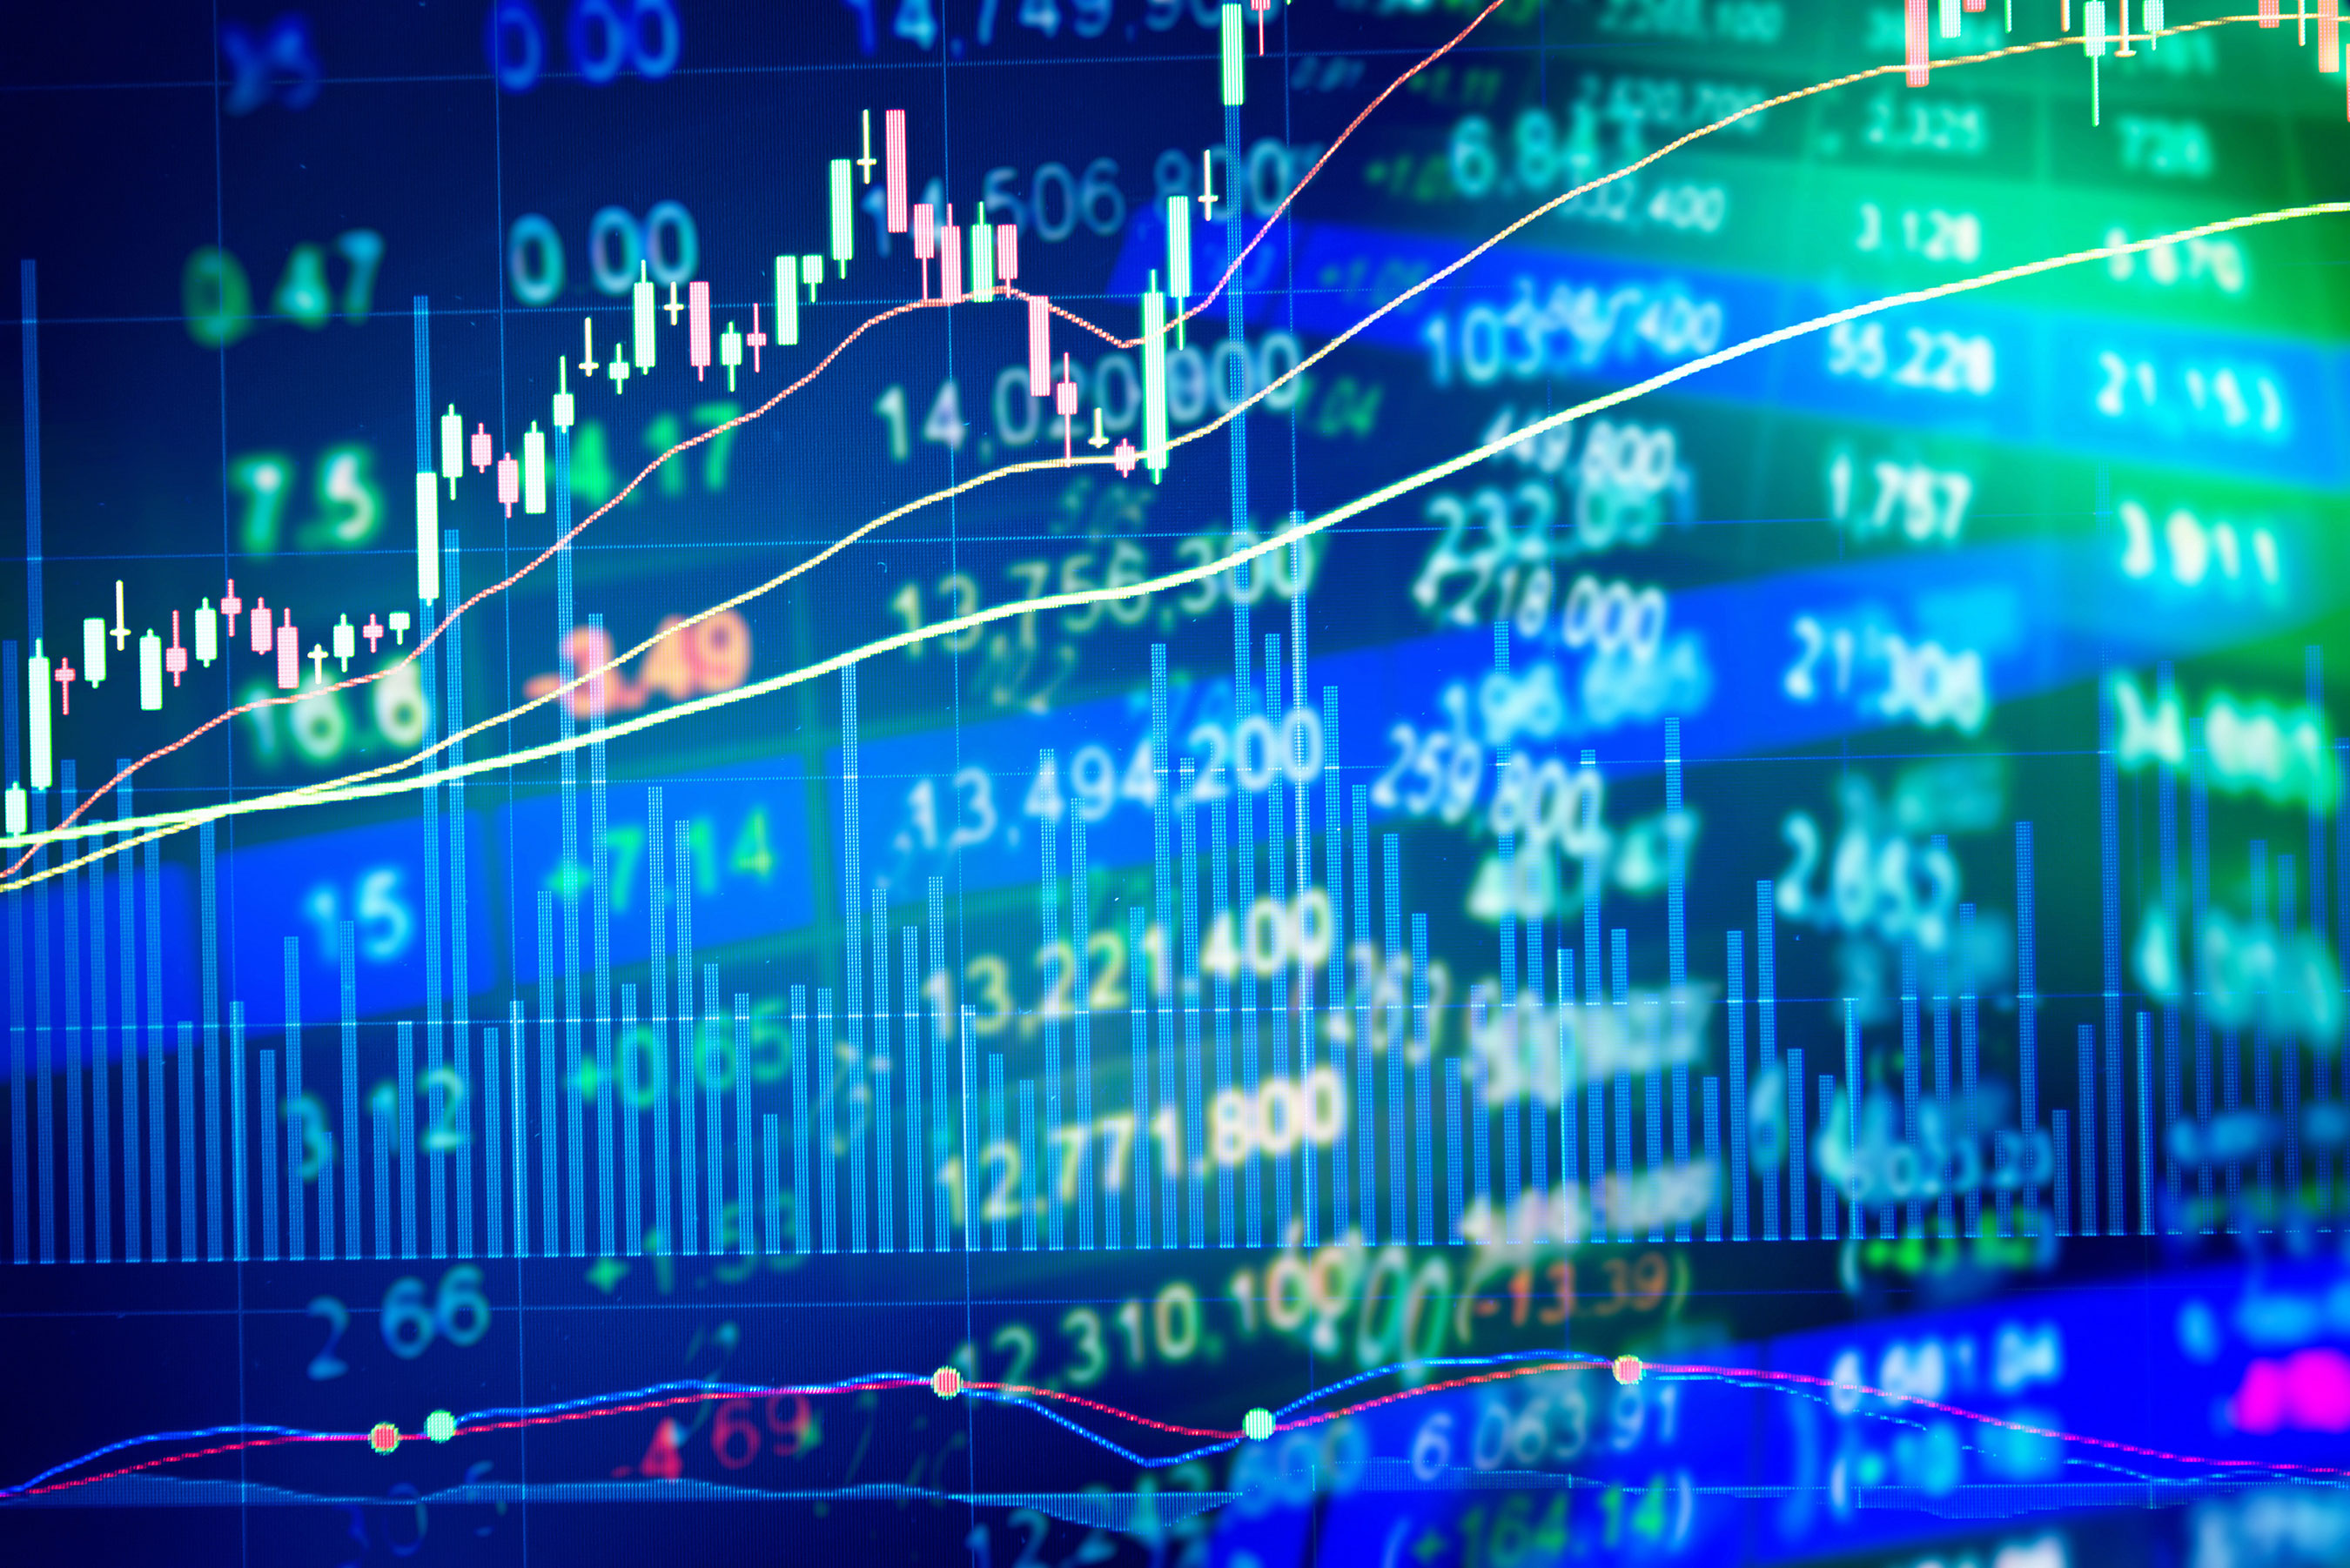 financial-data-concept-stock-market-pricing-abstract-business